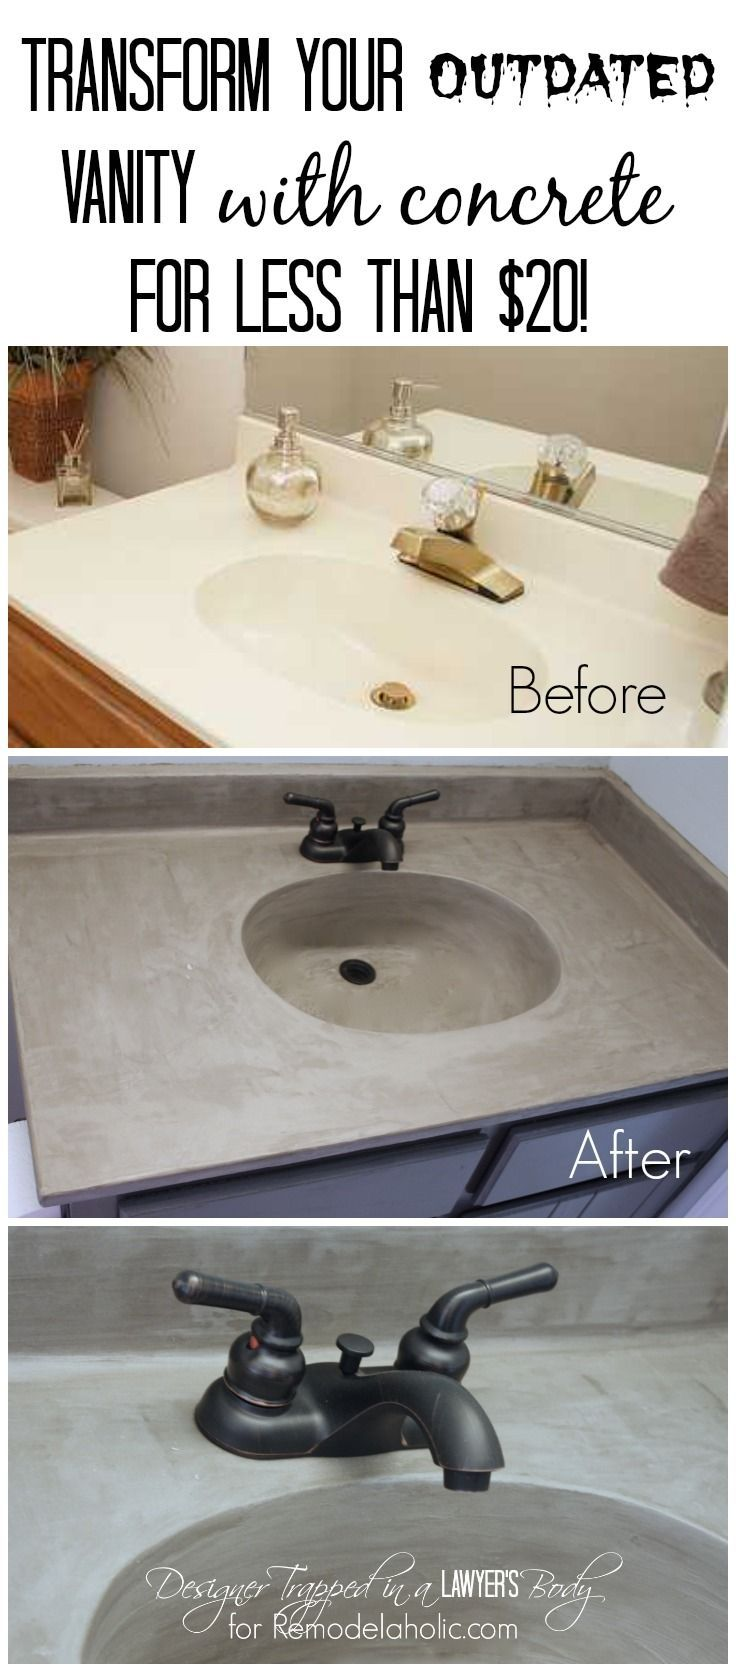 diy concrete vanity {with integral sink}! | sink countertop